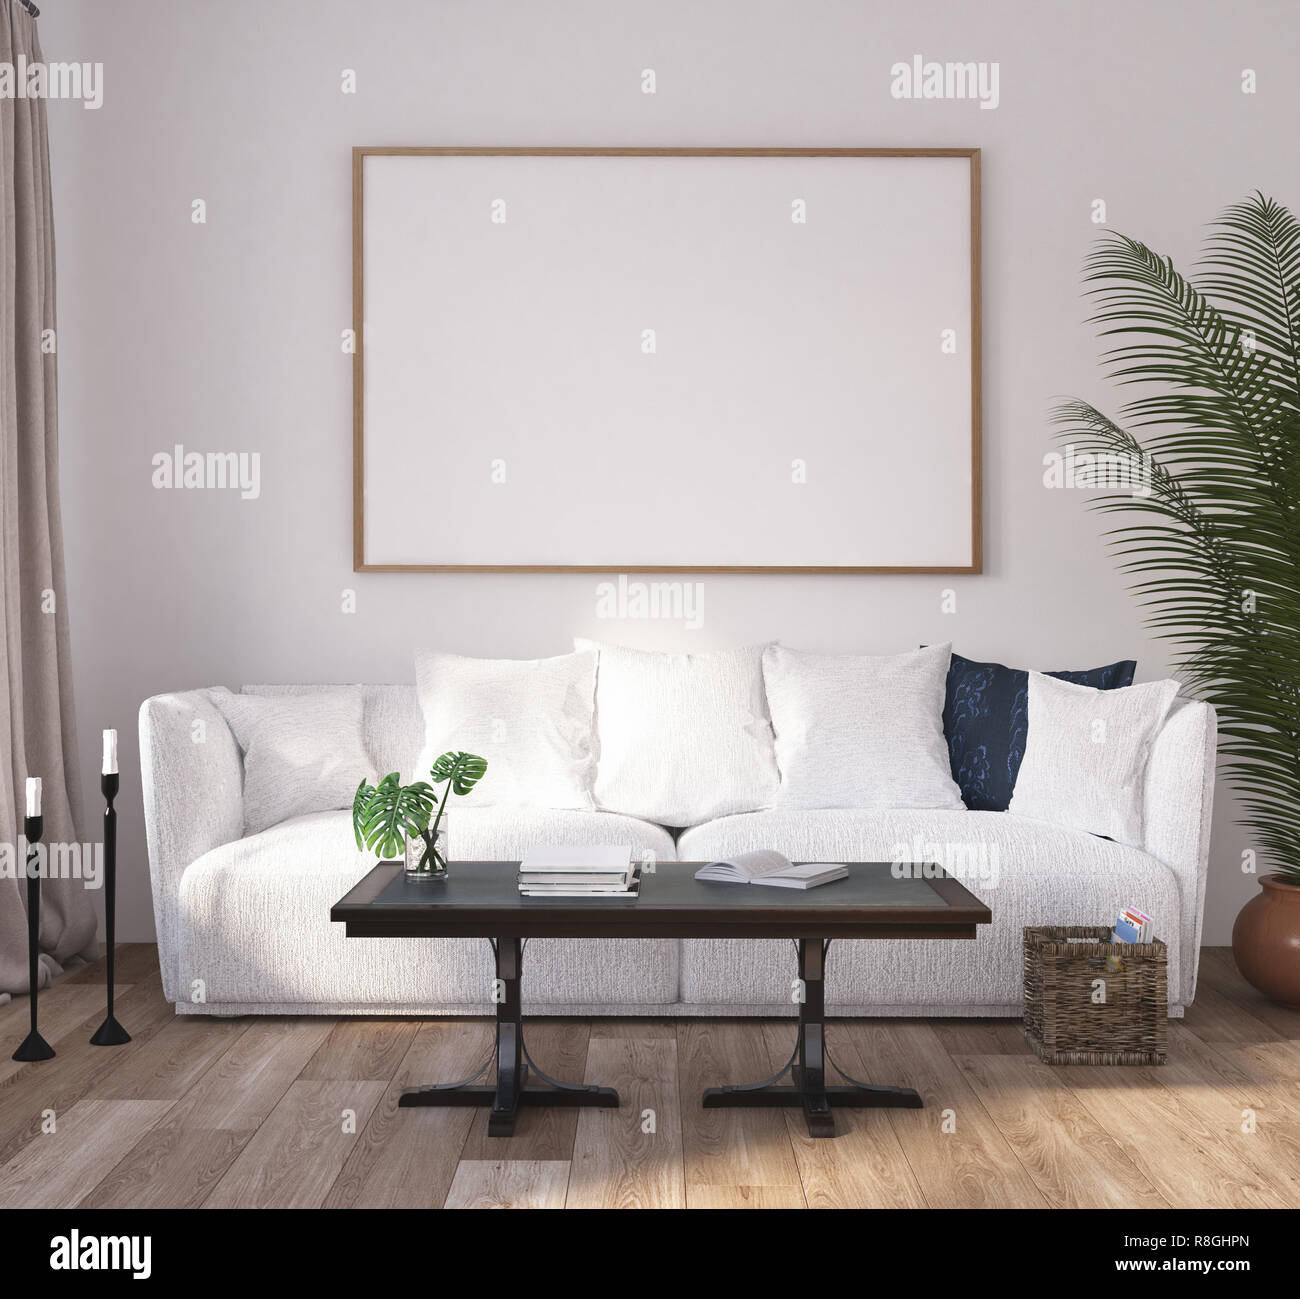 Mock Up Poster Frame In Home Interior Background Modern Style Living Room 3d Render Stock Photo Alamy